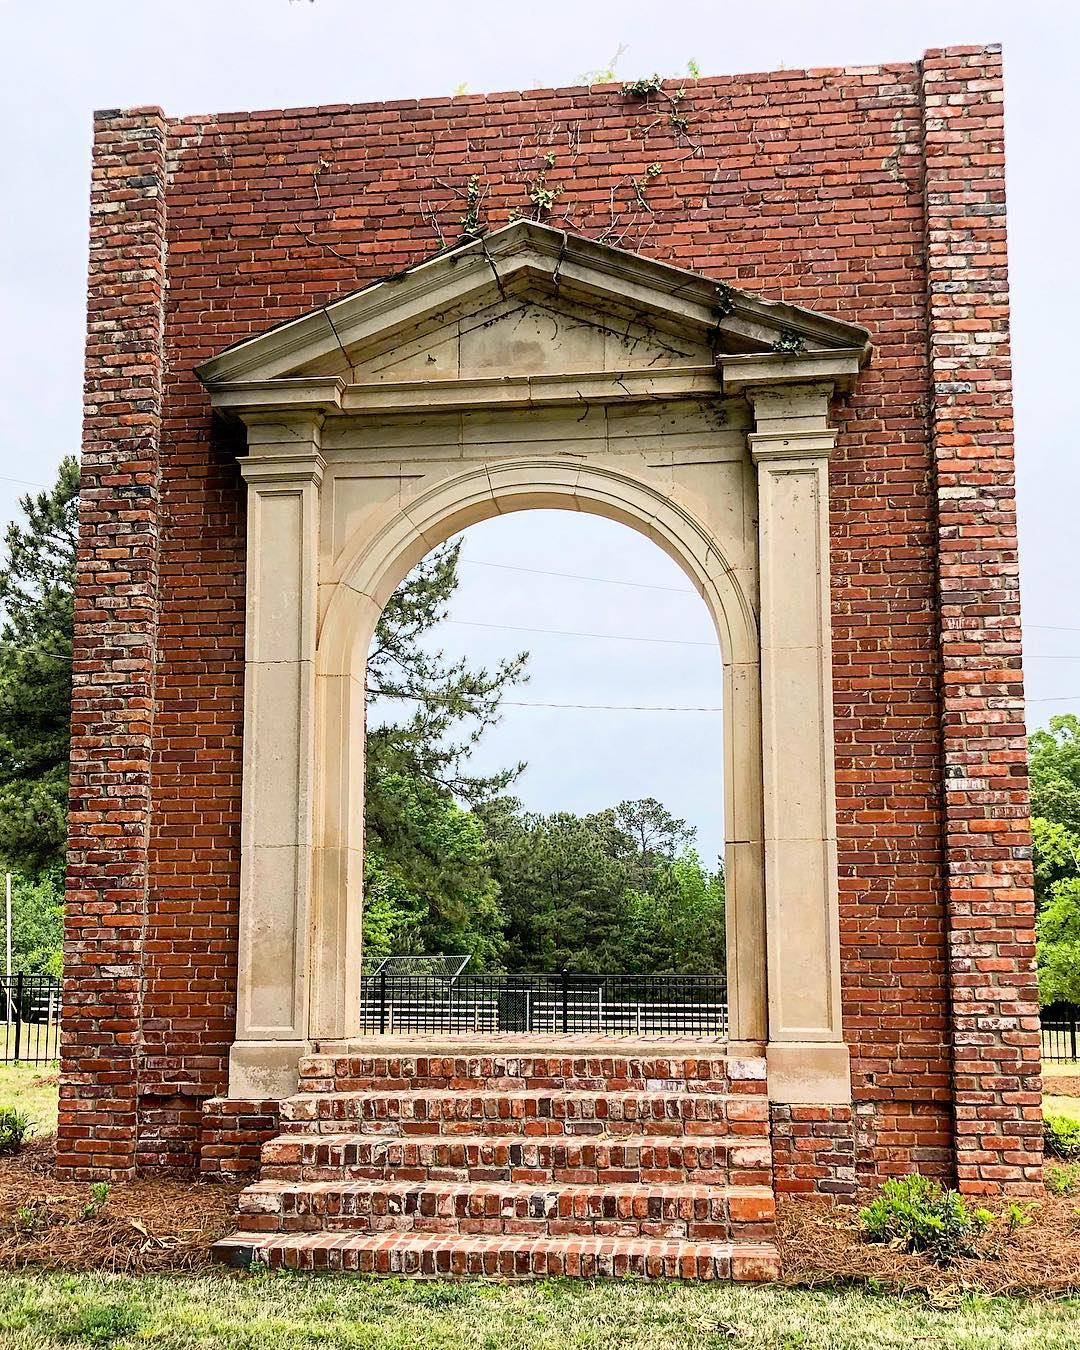 The doorway to the old Ridgeway School. Built in 1921, it closed in the 1960s and was torn down in the 2000s